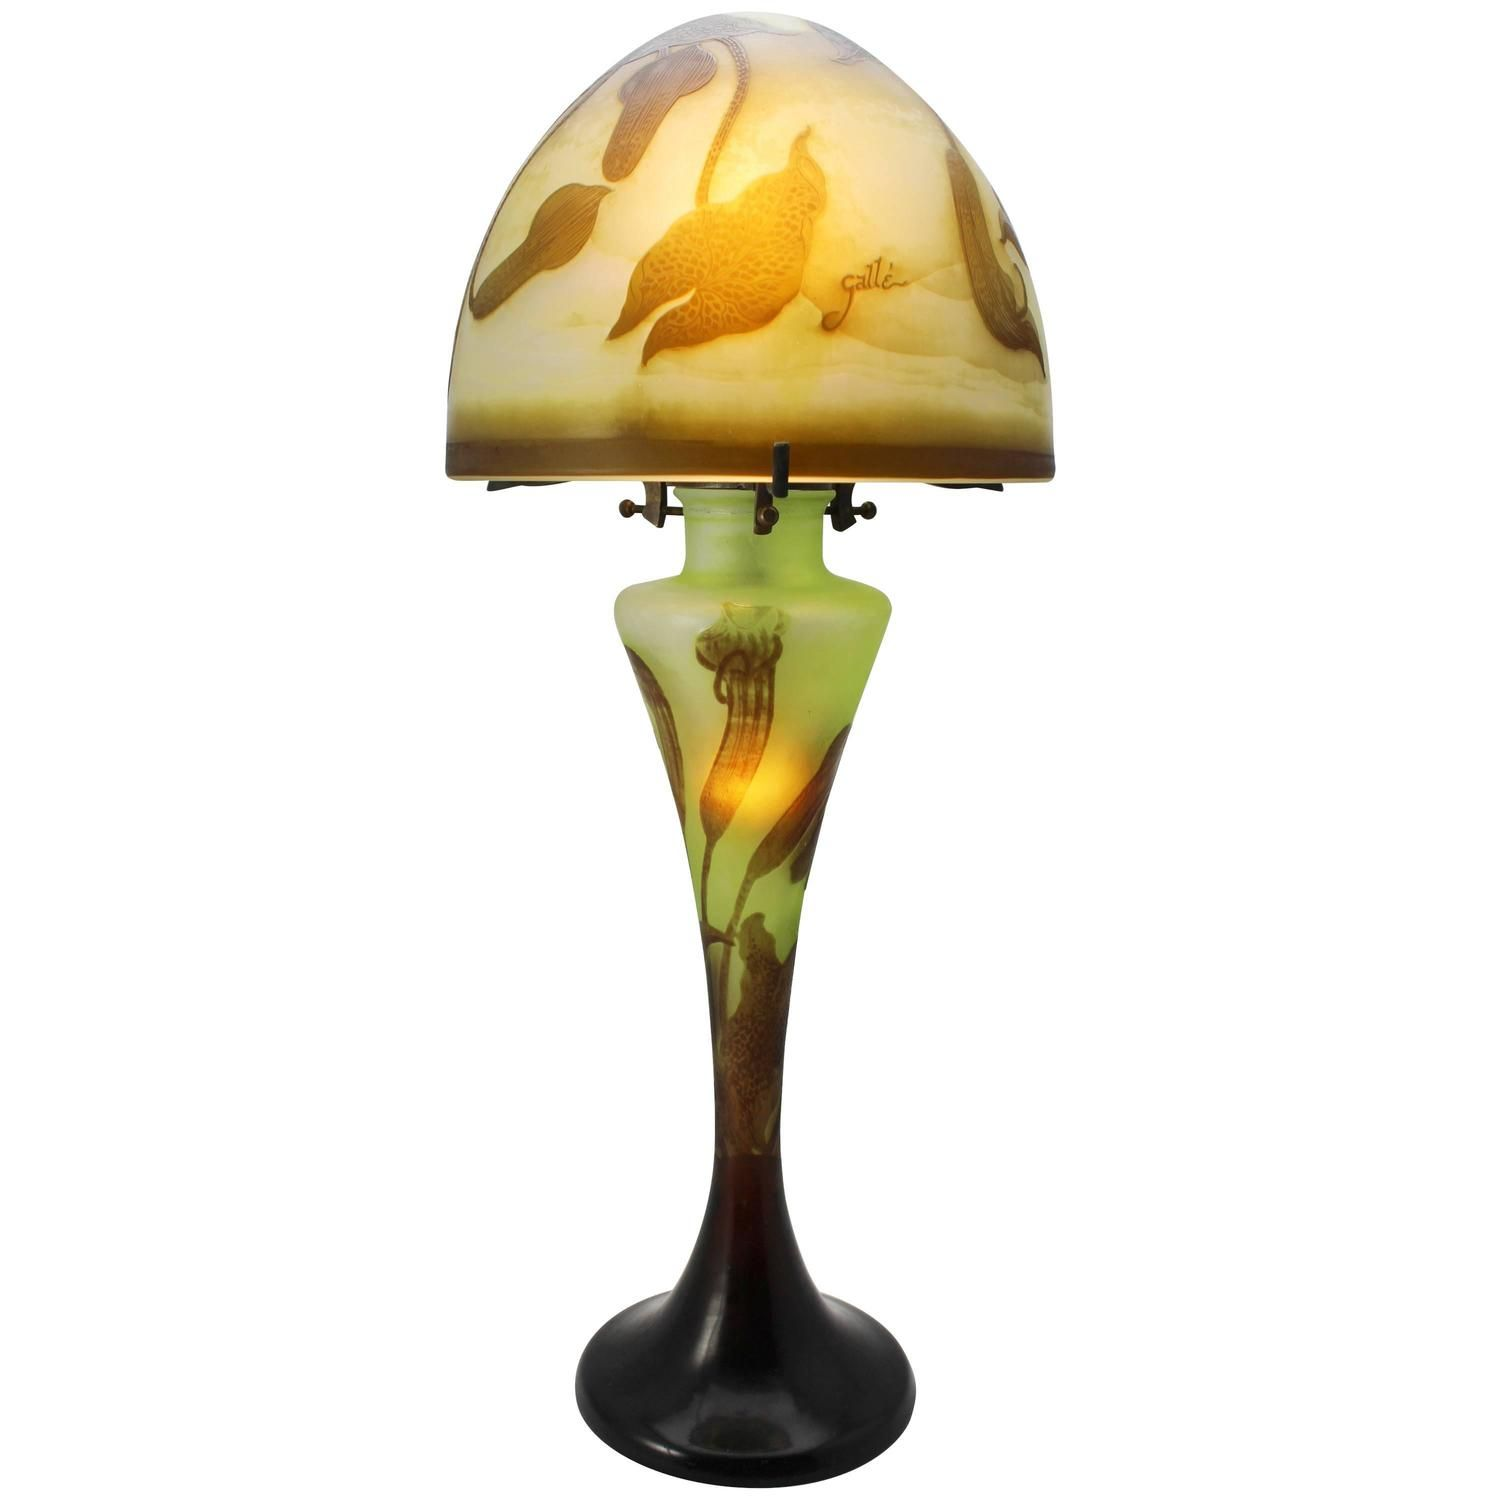 Emile Galle Seaweed Lamp, circa 1900 -- Authentic Emile Galle Cameo lamp, circa 1900 cameo, acid etched with three colors; cream, green, brown and purple. The lamp displays an art nouveau seaweed and aquatic motif.